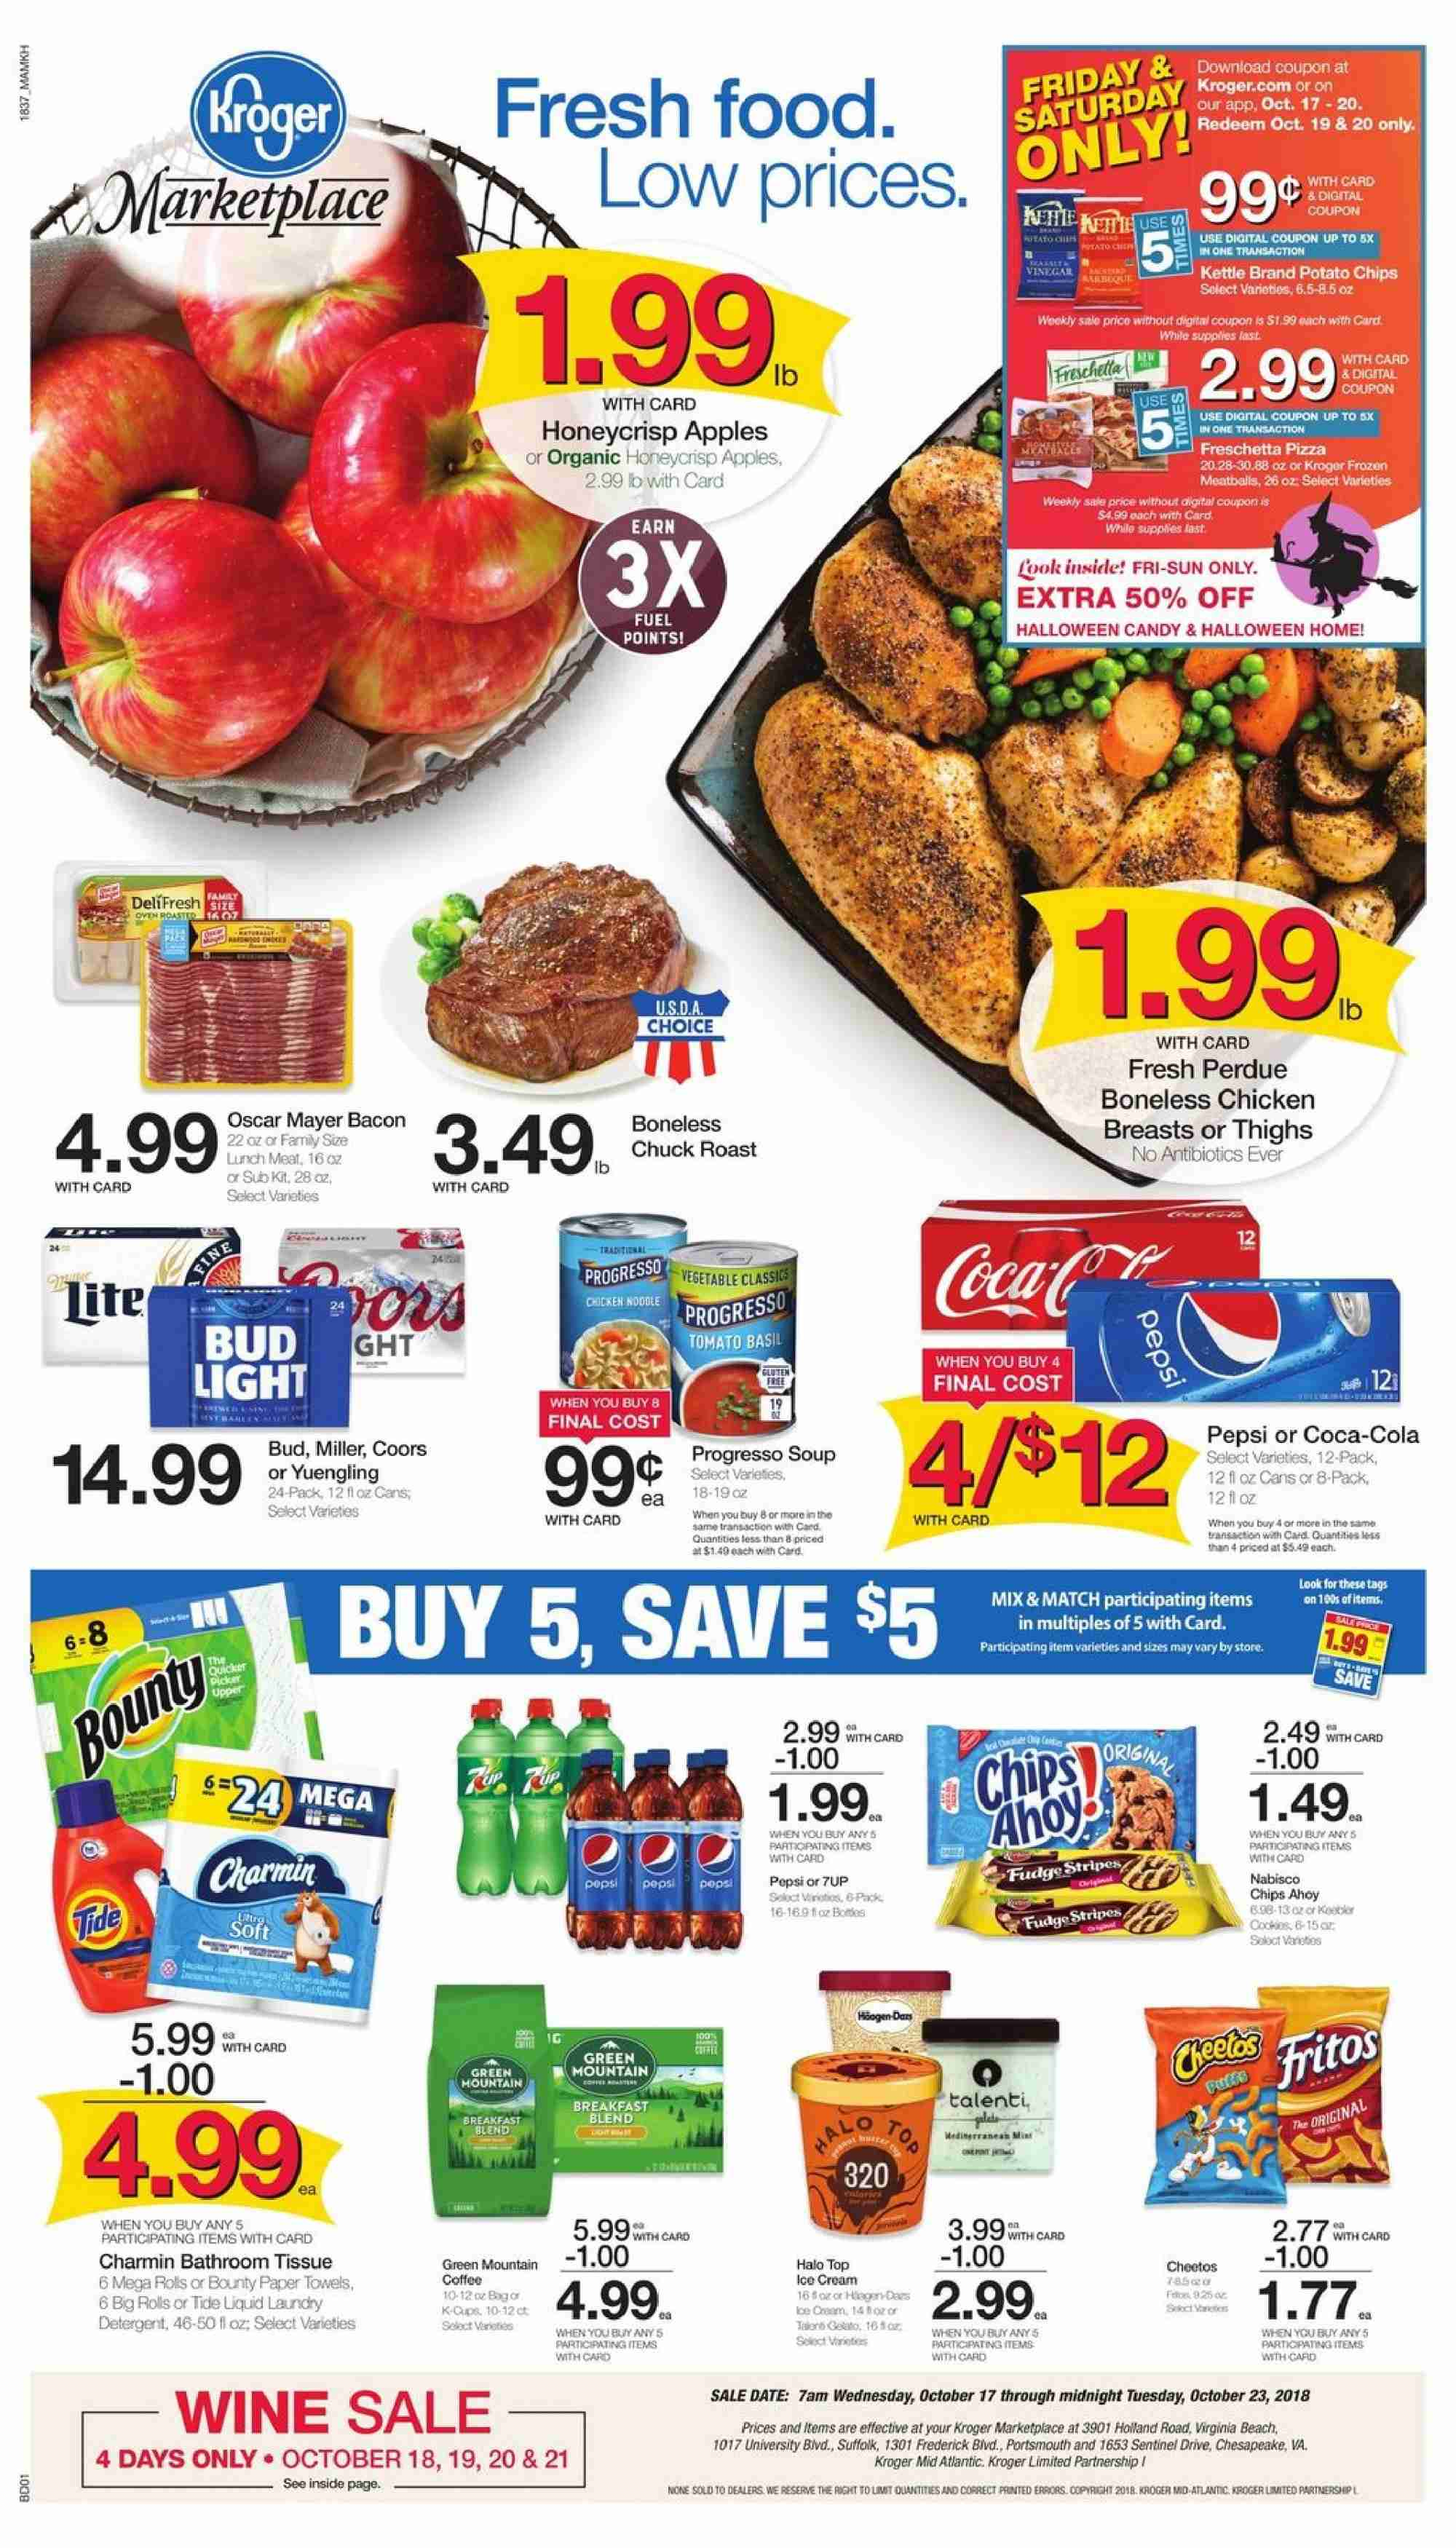 Kroger Flyer - 10.18.2018 - 10.23.2018 - Sales products - apples, bacon, bathroom, coca-cola, detergent, frozen, fuel, tide, towel, ice cream, potato chips, chicken, chicken breast, paper towel, pepsi, noodle, chips. Page 1.